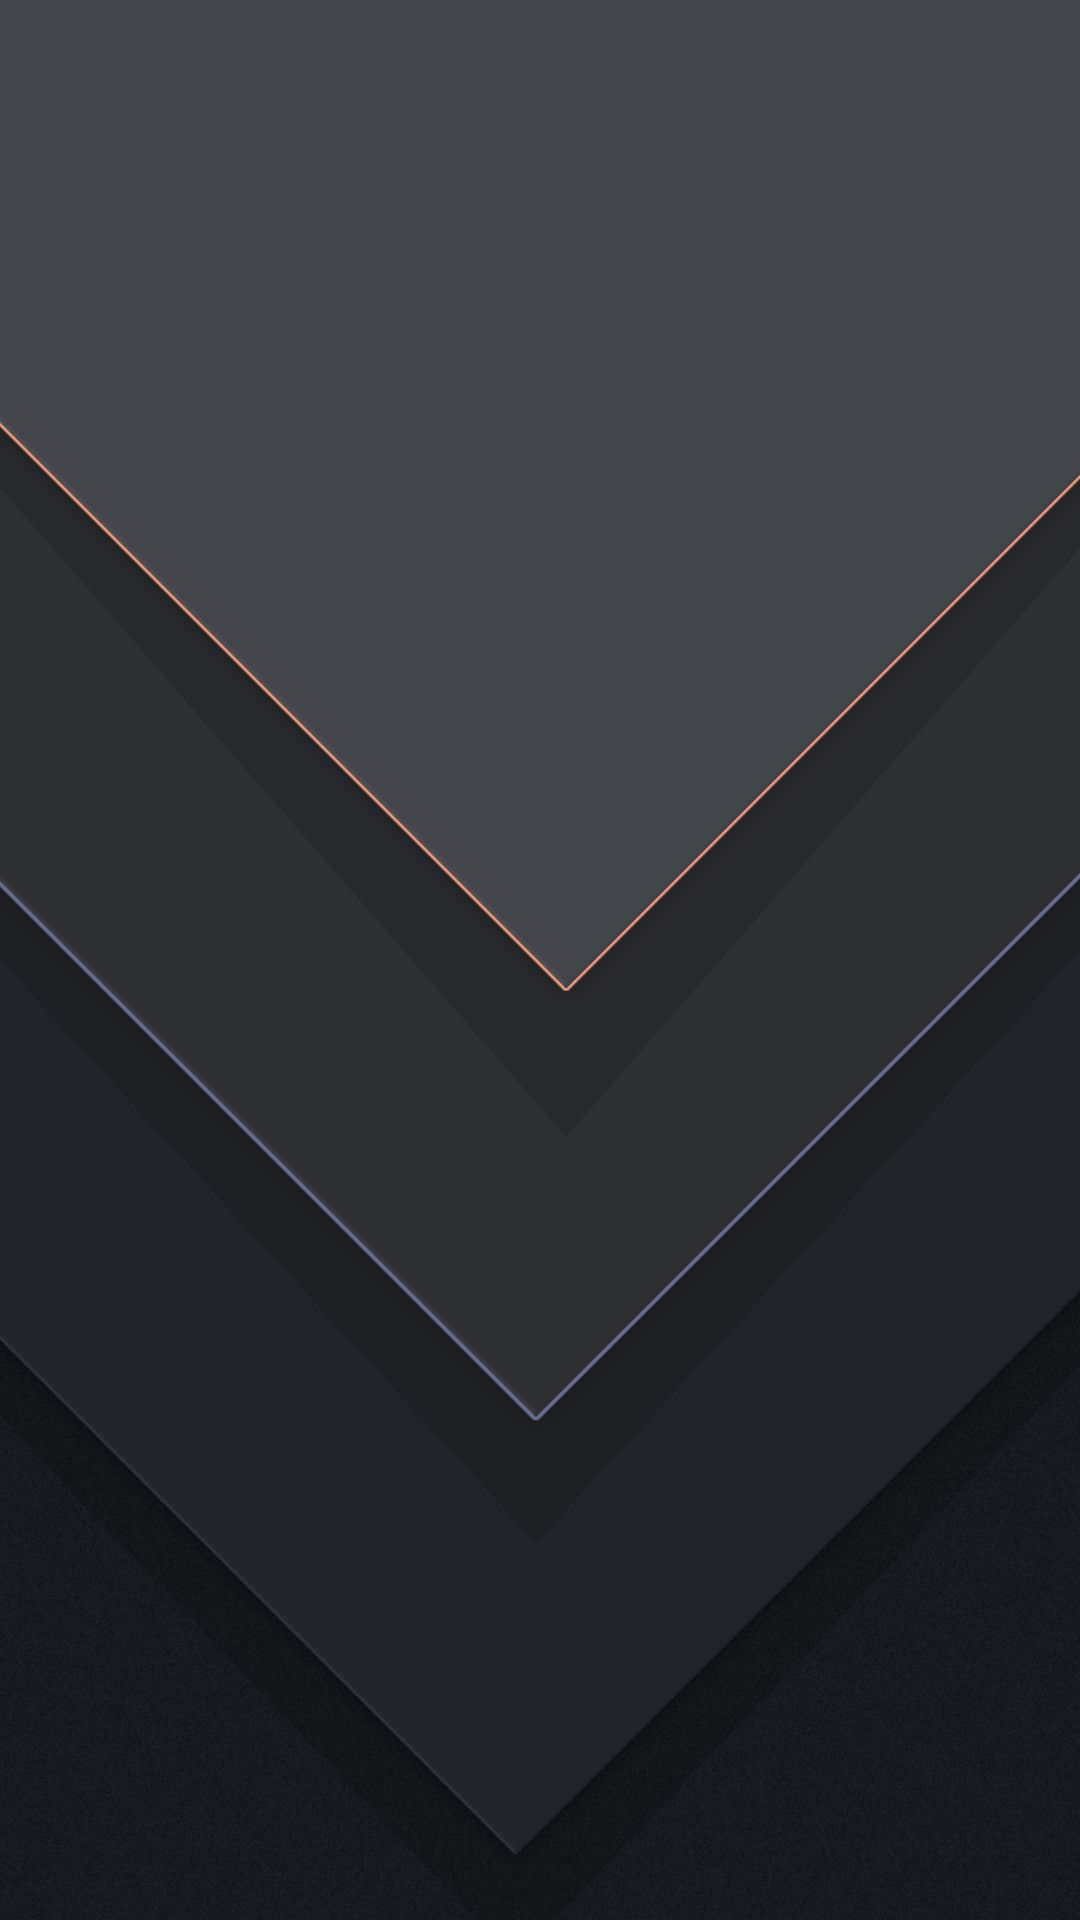 Black Android Wallpapers Top Free Black Android